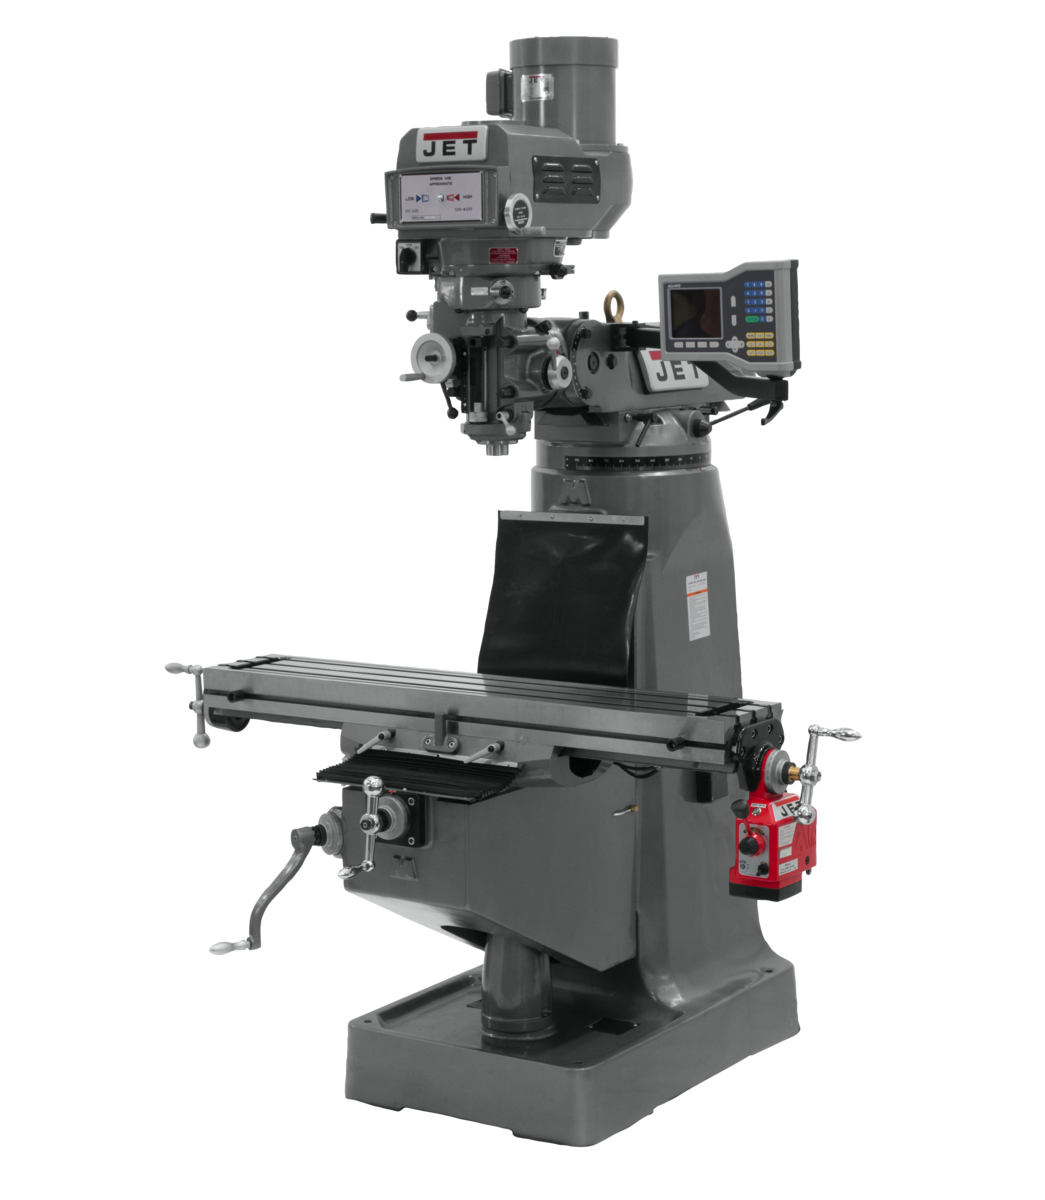 JTM-4VS-1 Mill With ACU-RITE 303 DRO With X-Axis Powerfeed